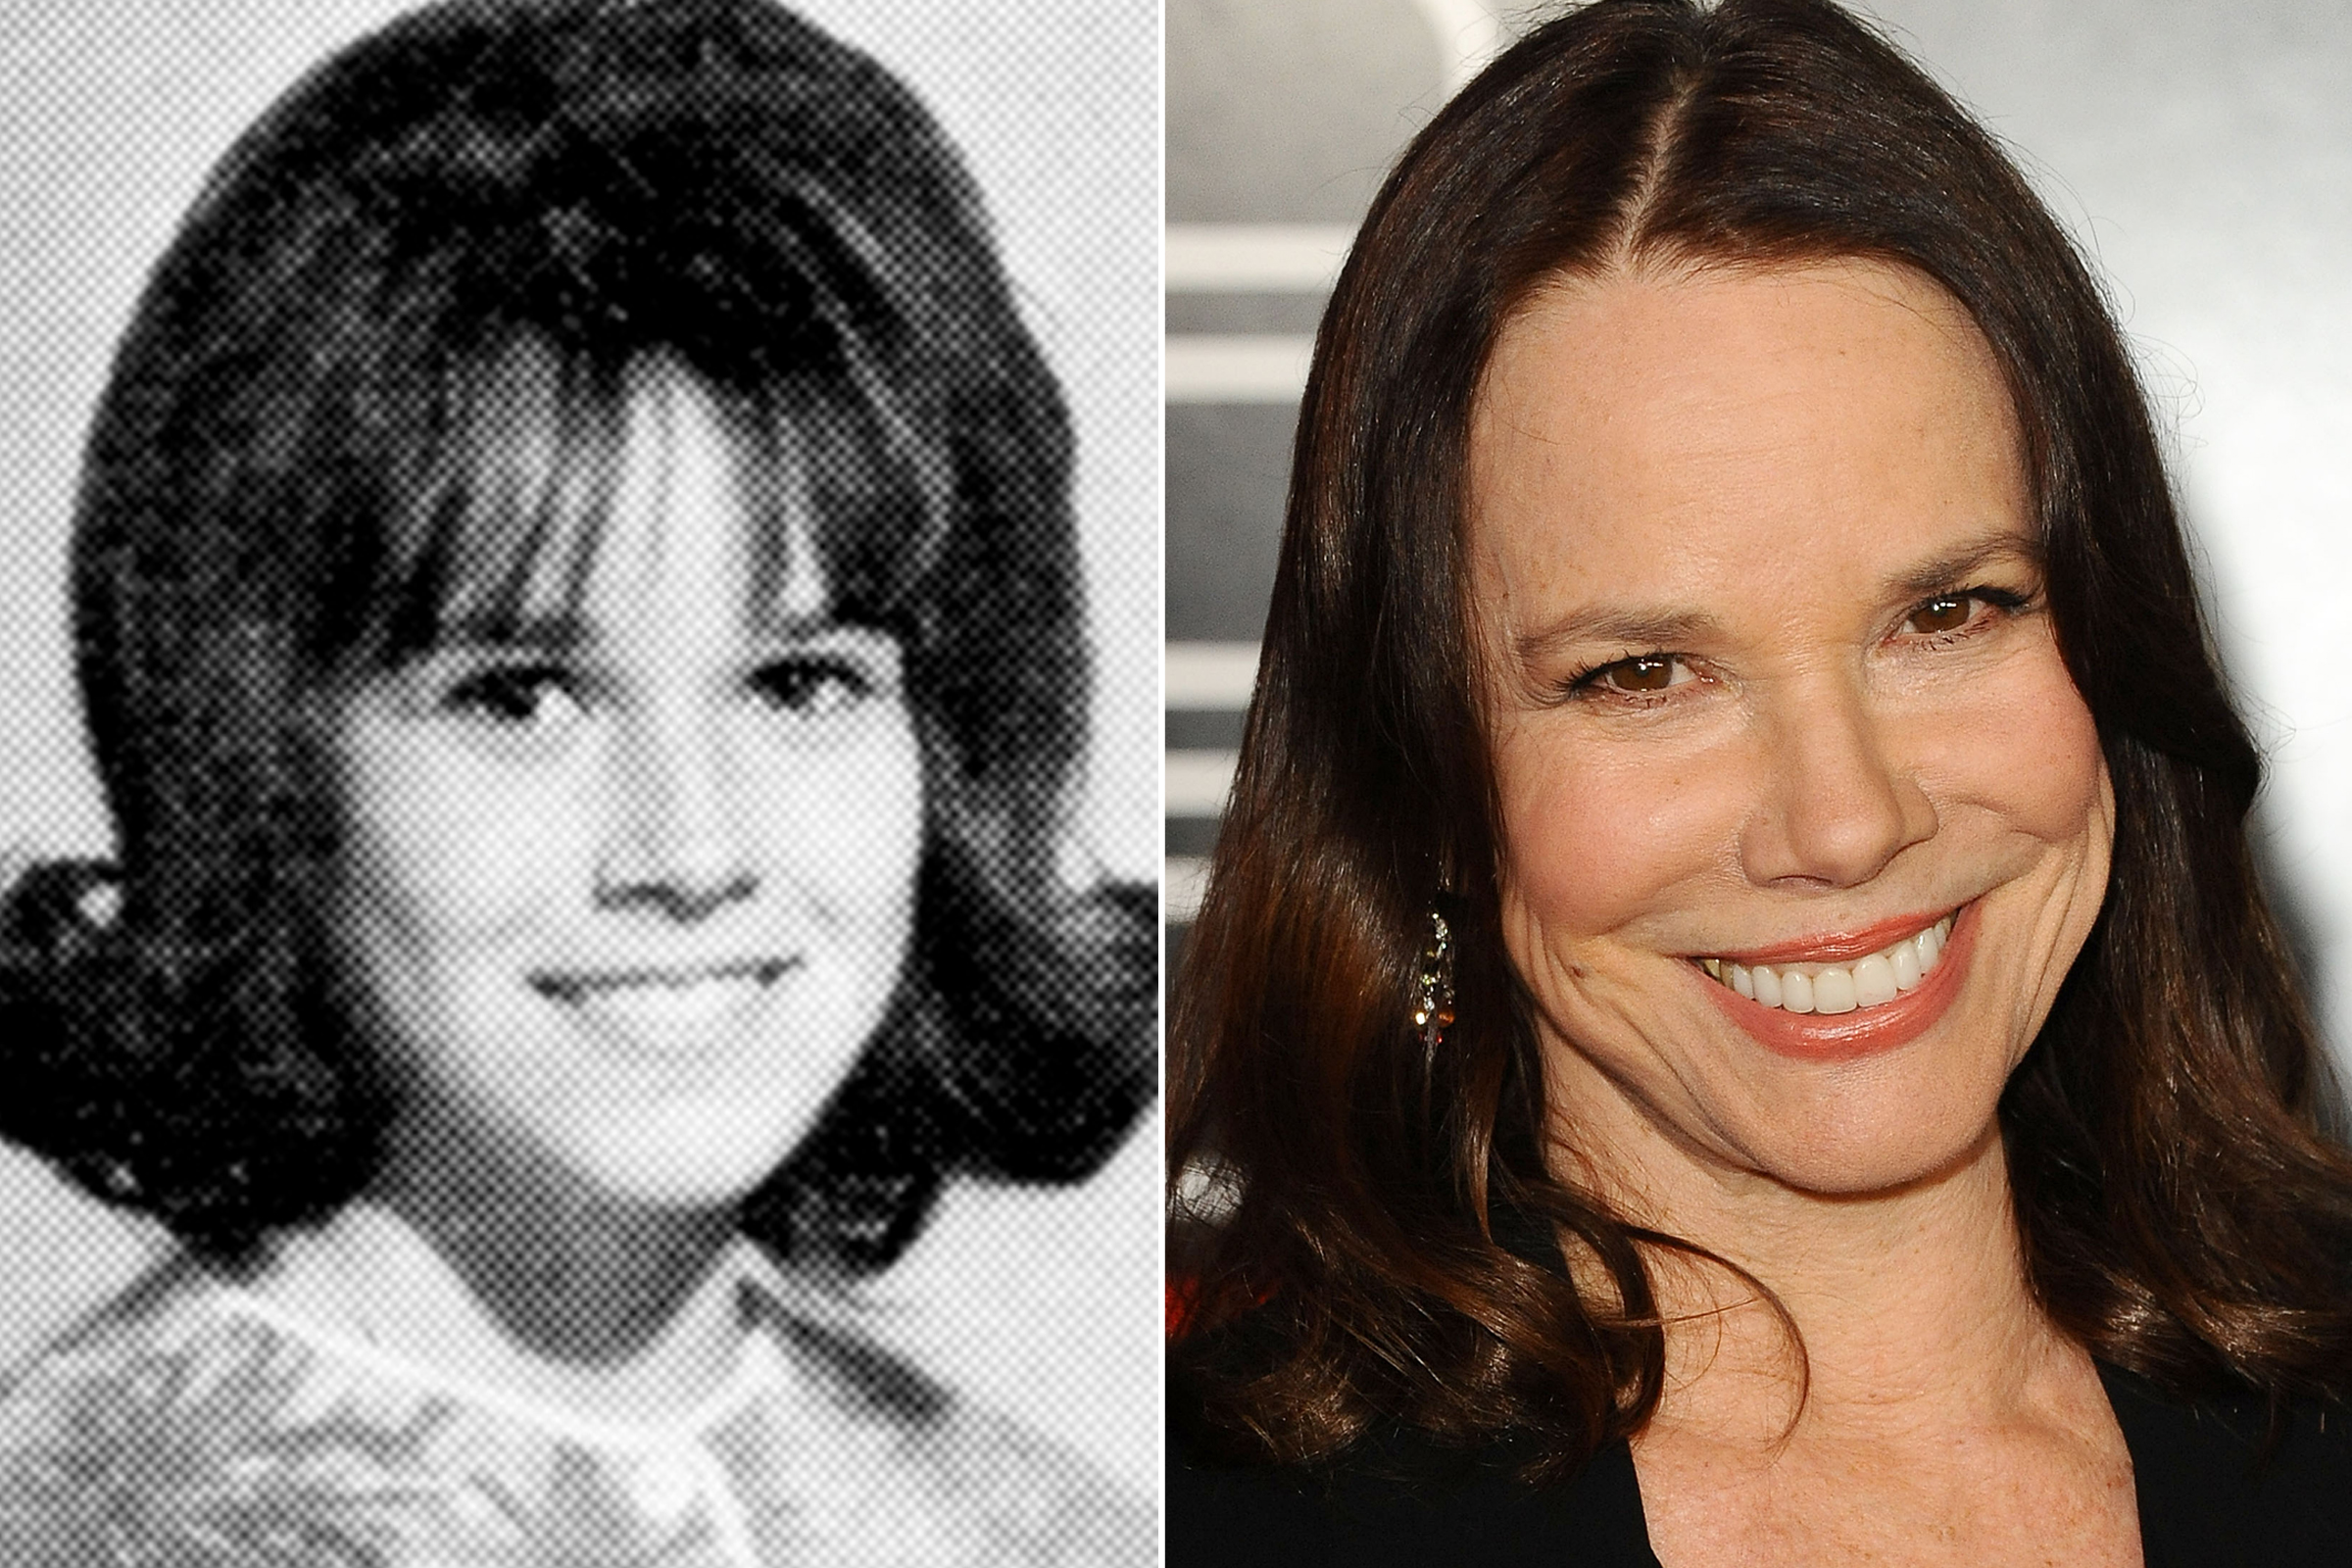 Barbara Hershey nudes (33 photo), Tits, Fappening, Instagram, butt 2019